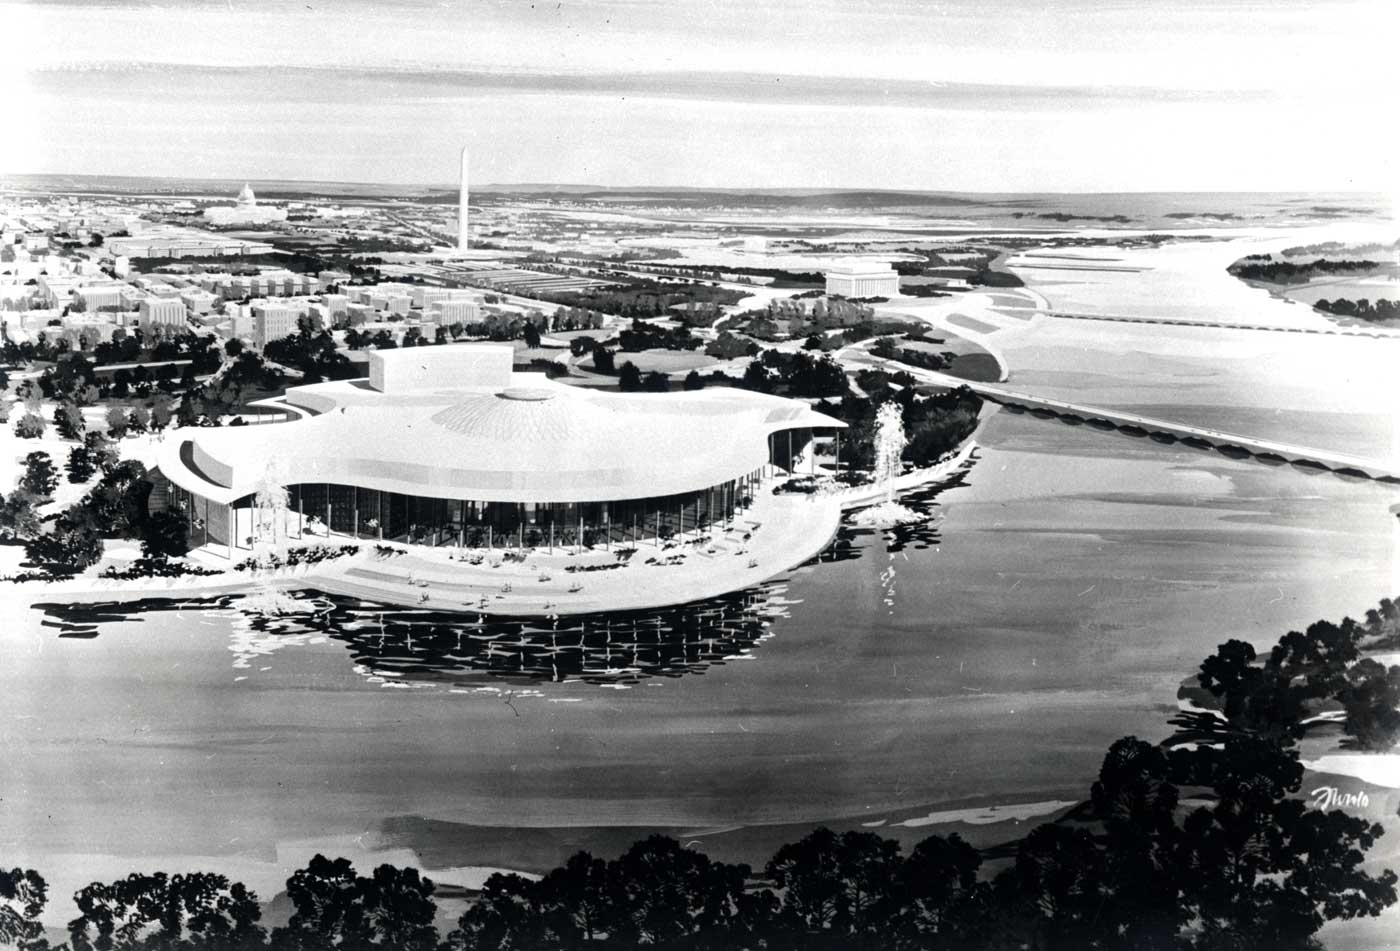 Preliminary proposal for the National Cultural Center (later Kennedy Center), Edward Durell Stone, 1959. Stone's curvilinear original design contrasts sharply with the boxy design that was executed. Edward Durell Stone Collection (MC 340), Box 104. Special Collections, University of Arkansas Libraries, Fayetteville.